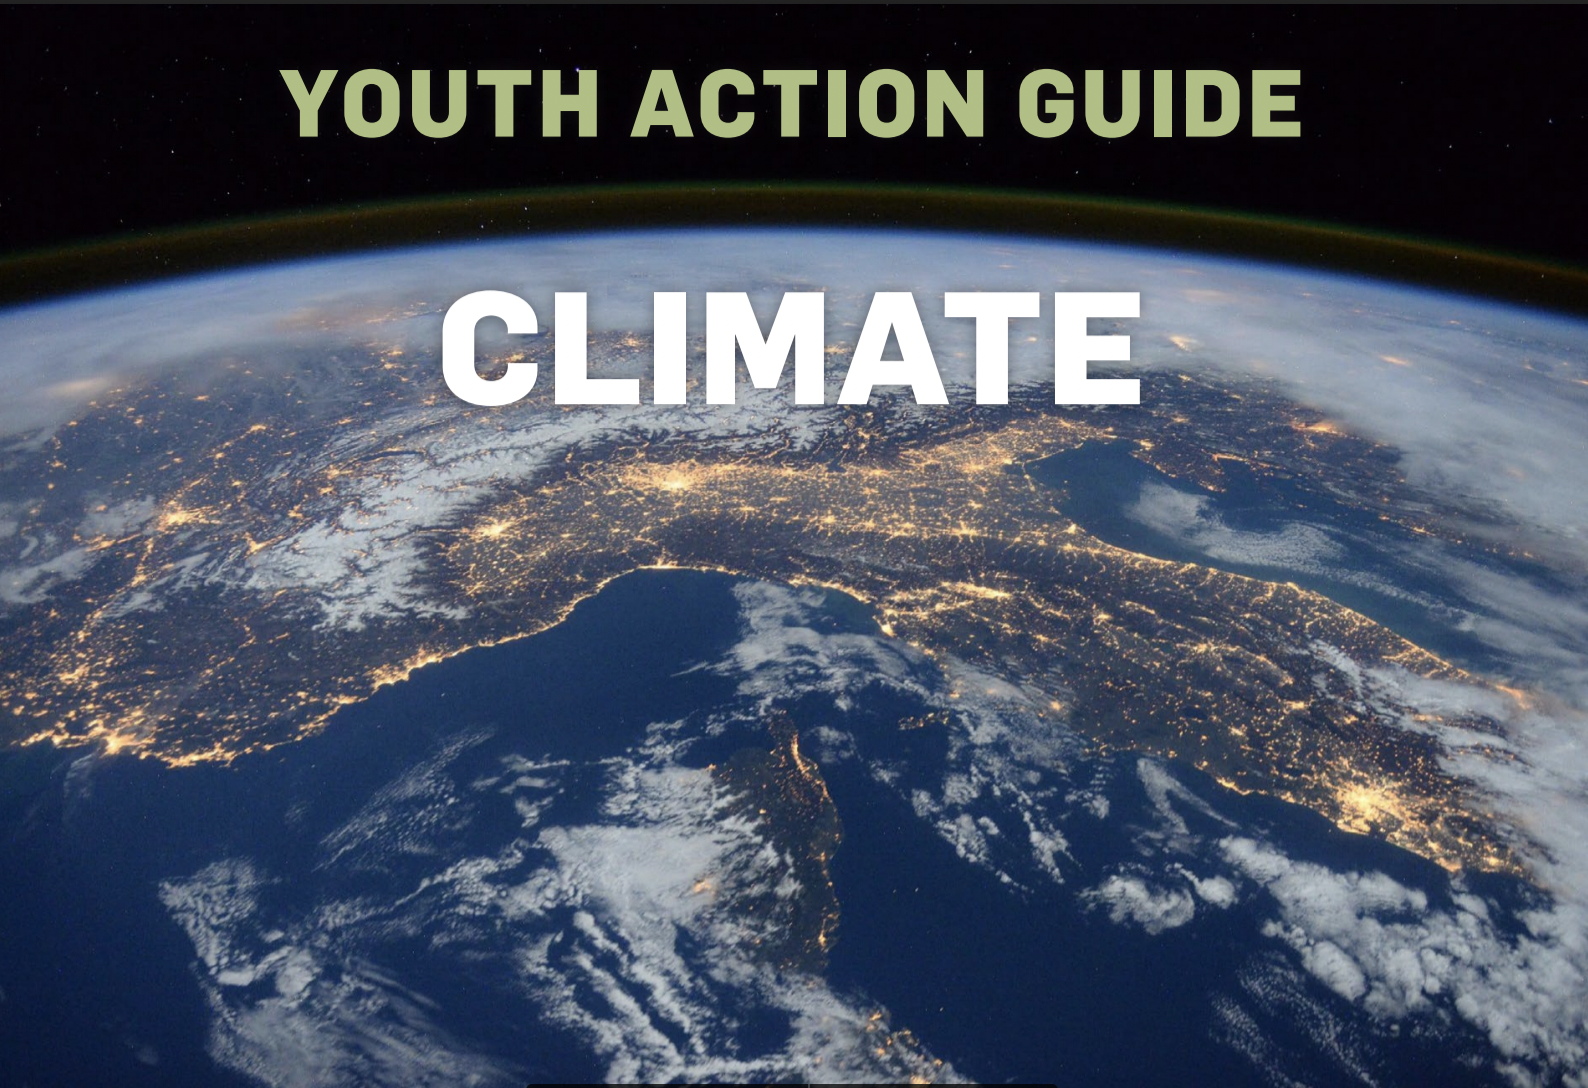 Youth Action Guide: Climate